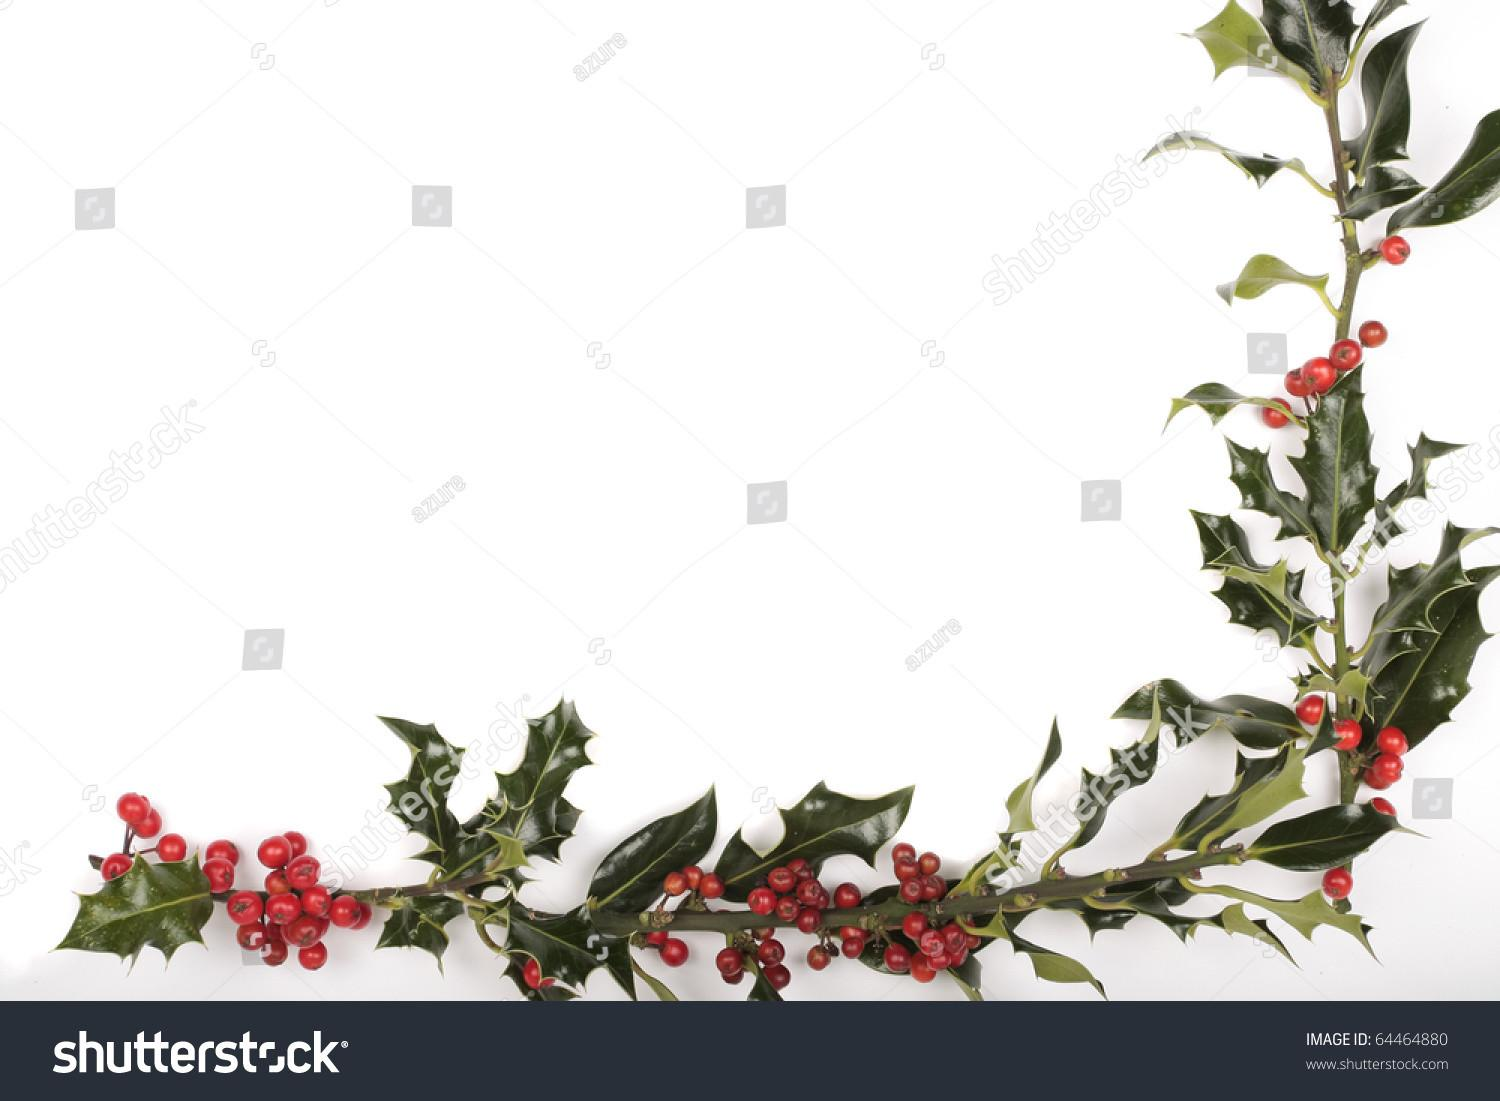 Christmas Holly Berries Decorations Stock